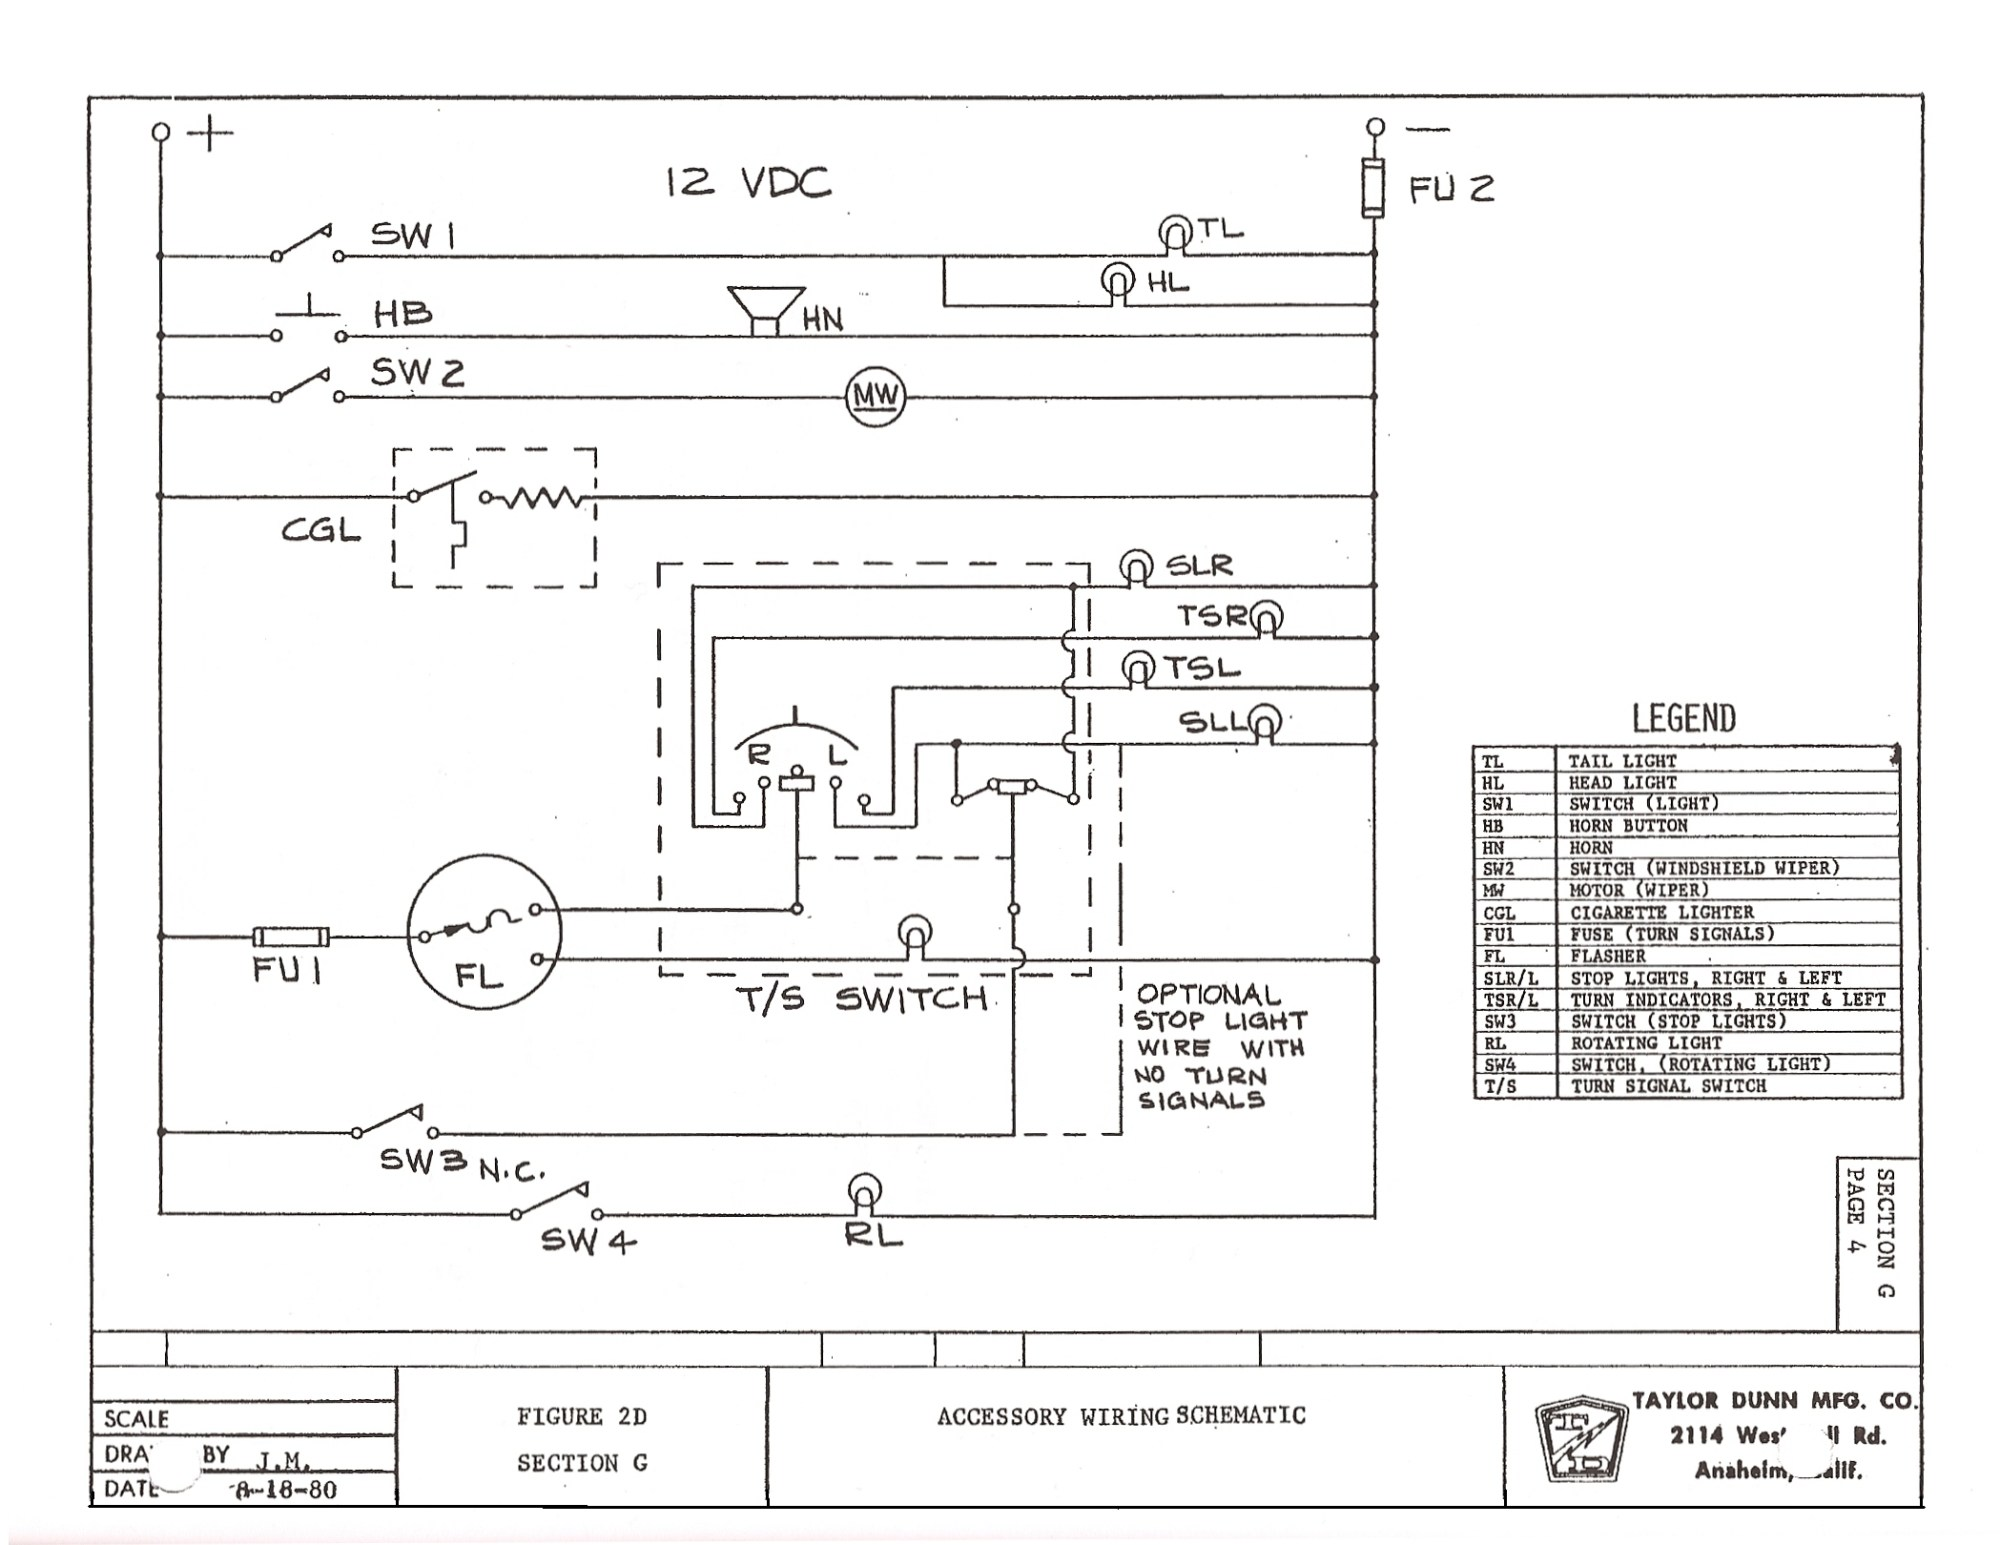 hight resolution of taylor dunn battery wiring diagram wiring diagram sheettaylor dunn battery wiring diagram wiring diagram blog taylor